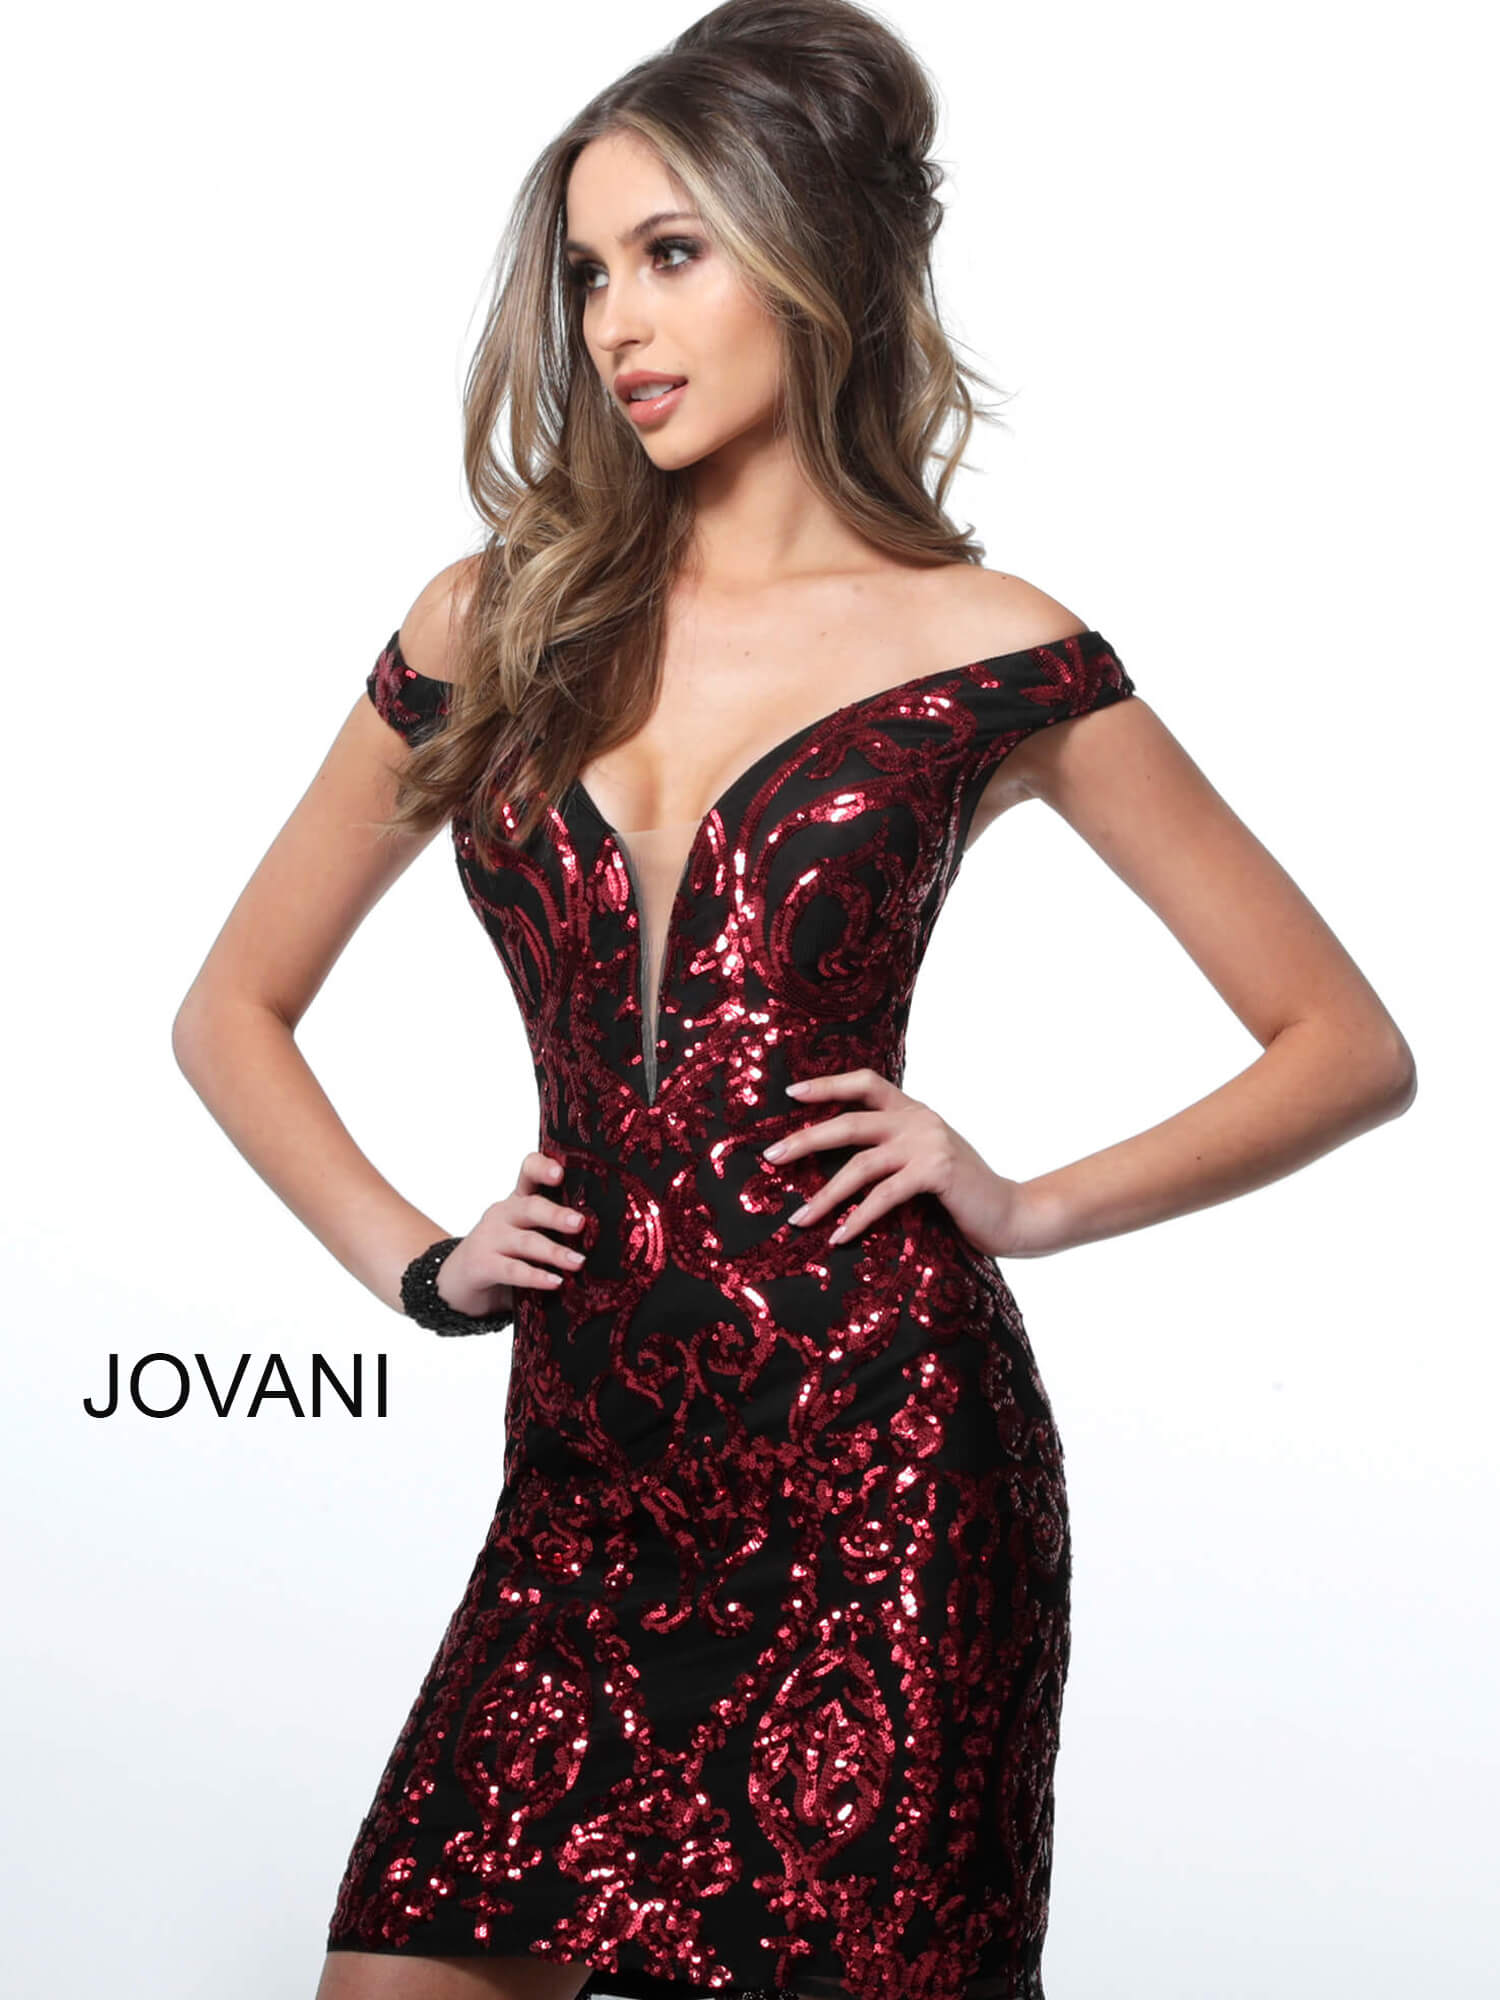 jovani Jovani 2666 Black Red Off the Shoulder Embellished Short Dress